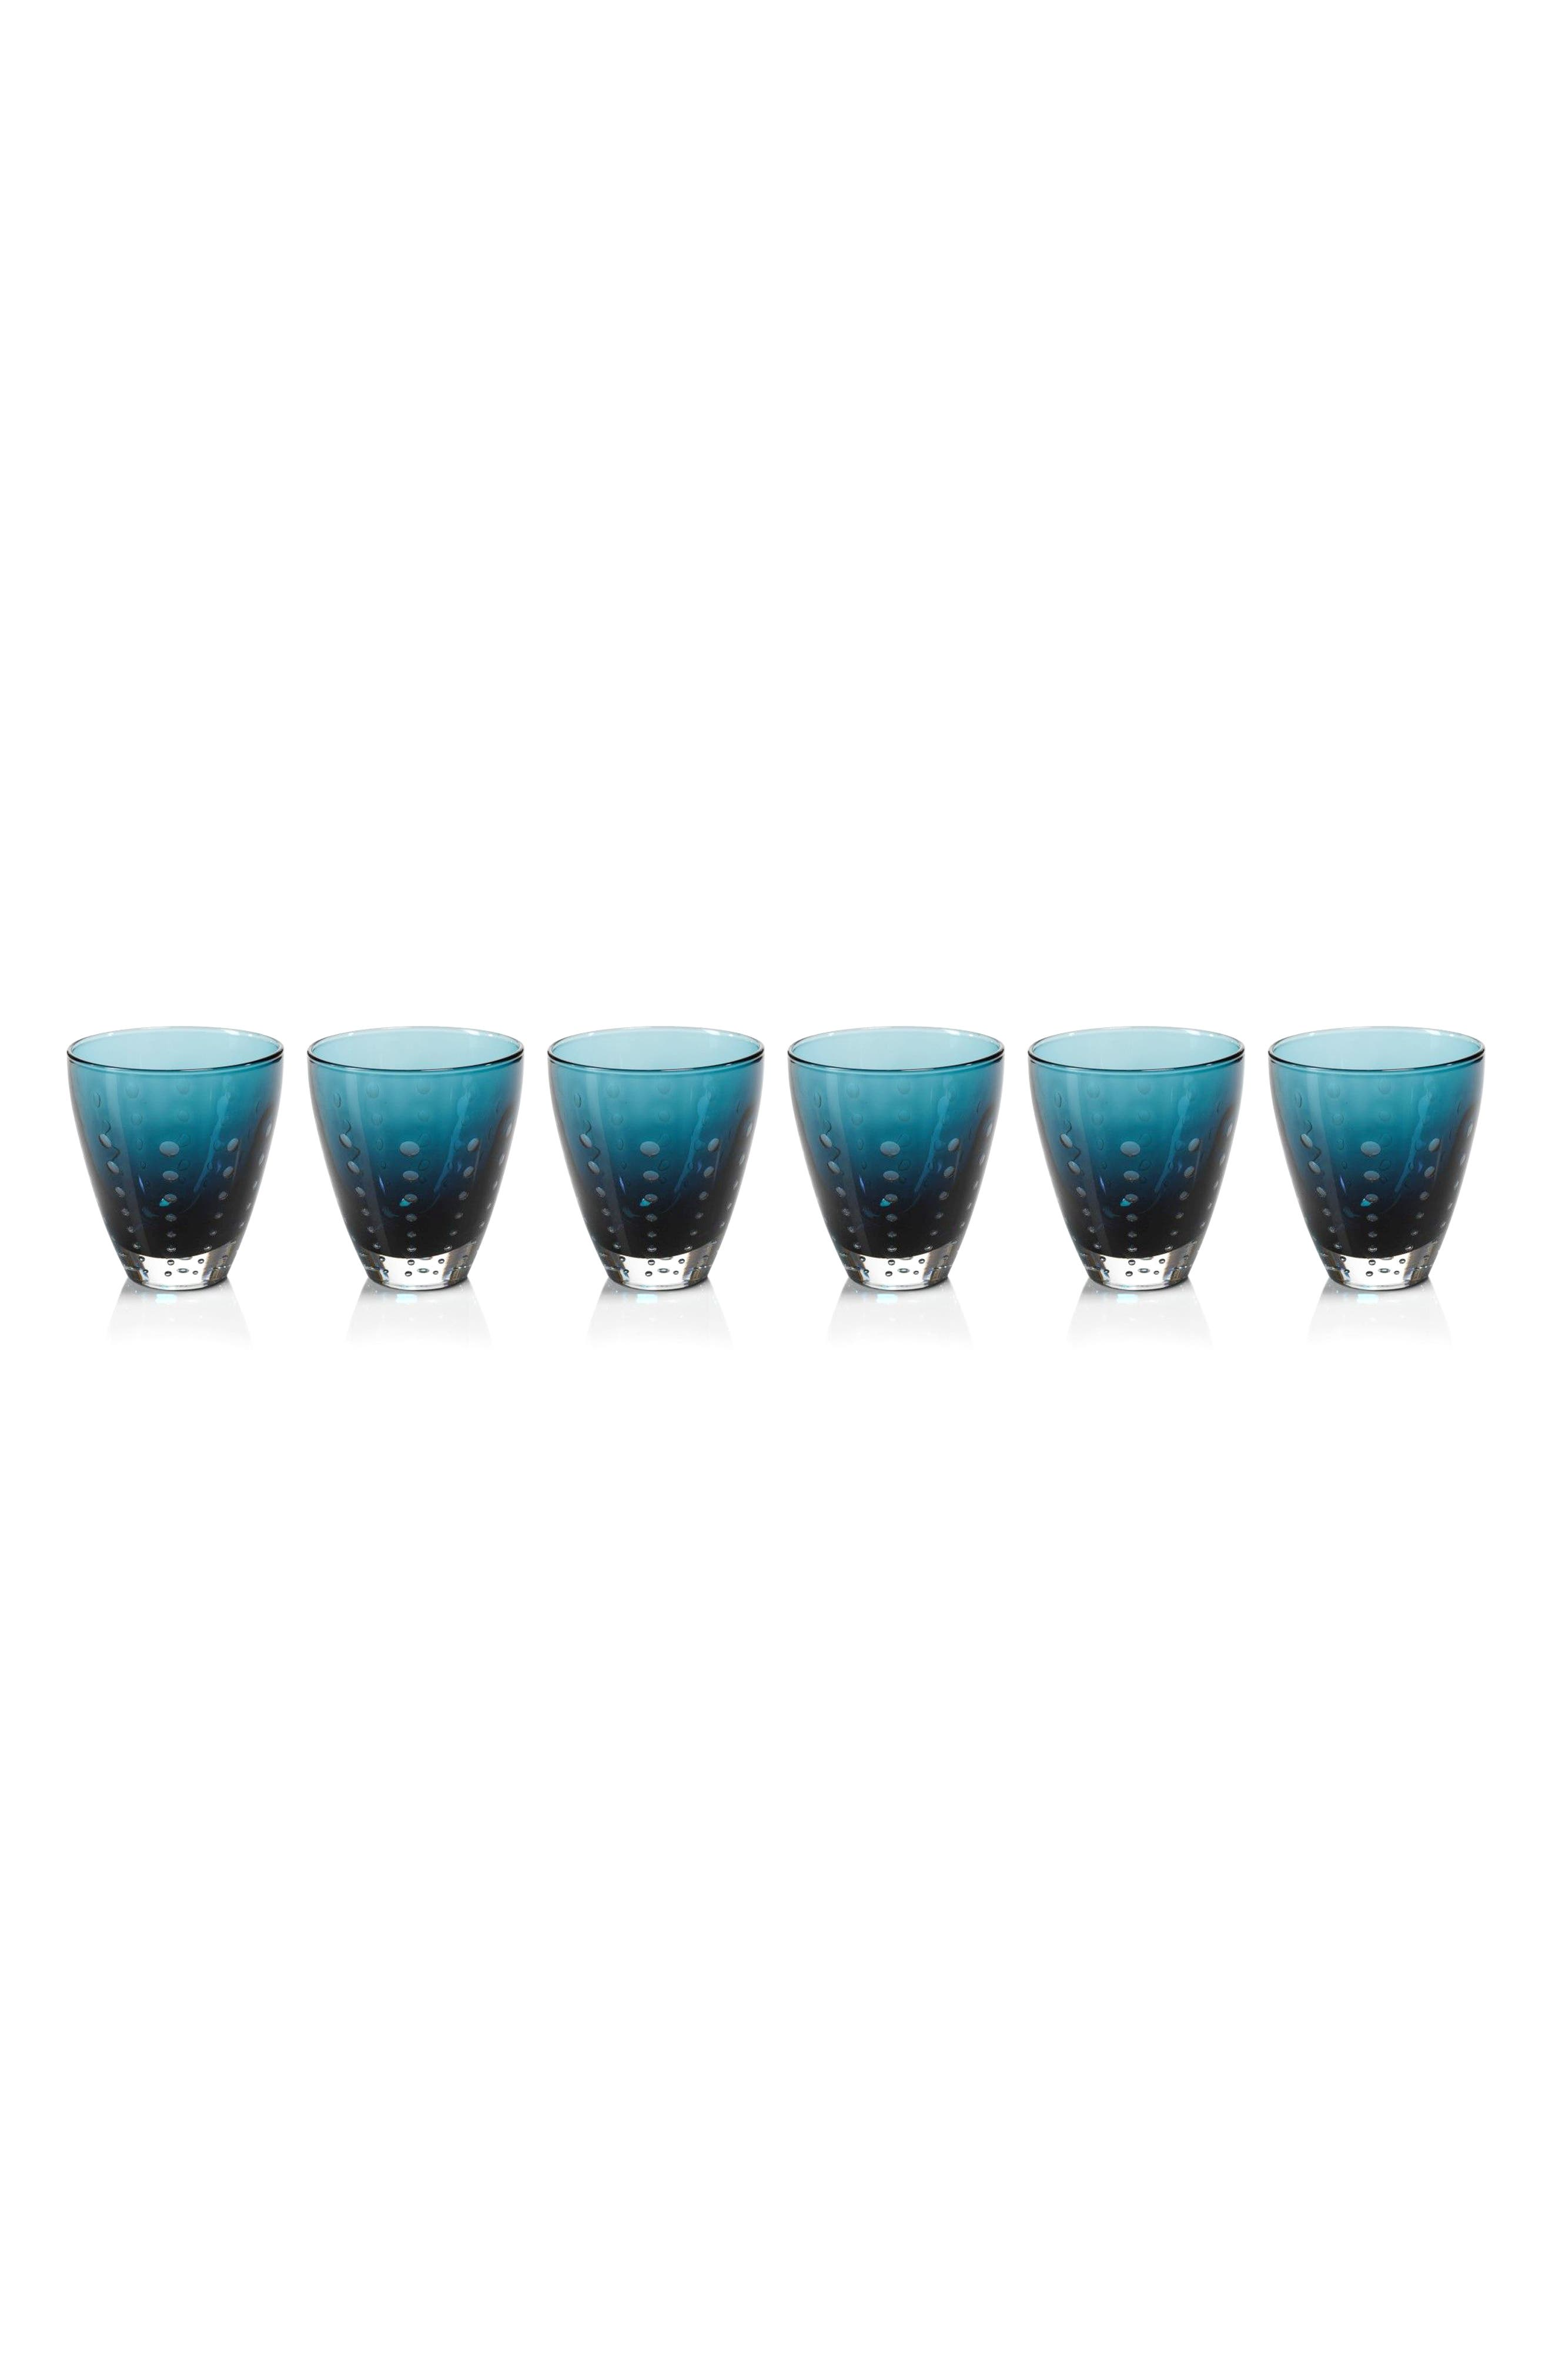 Bubbled Set of 6 Double Old Fashioned Glasses,                         Main,                         color, 400